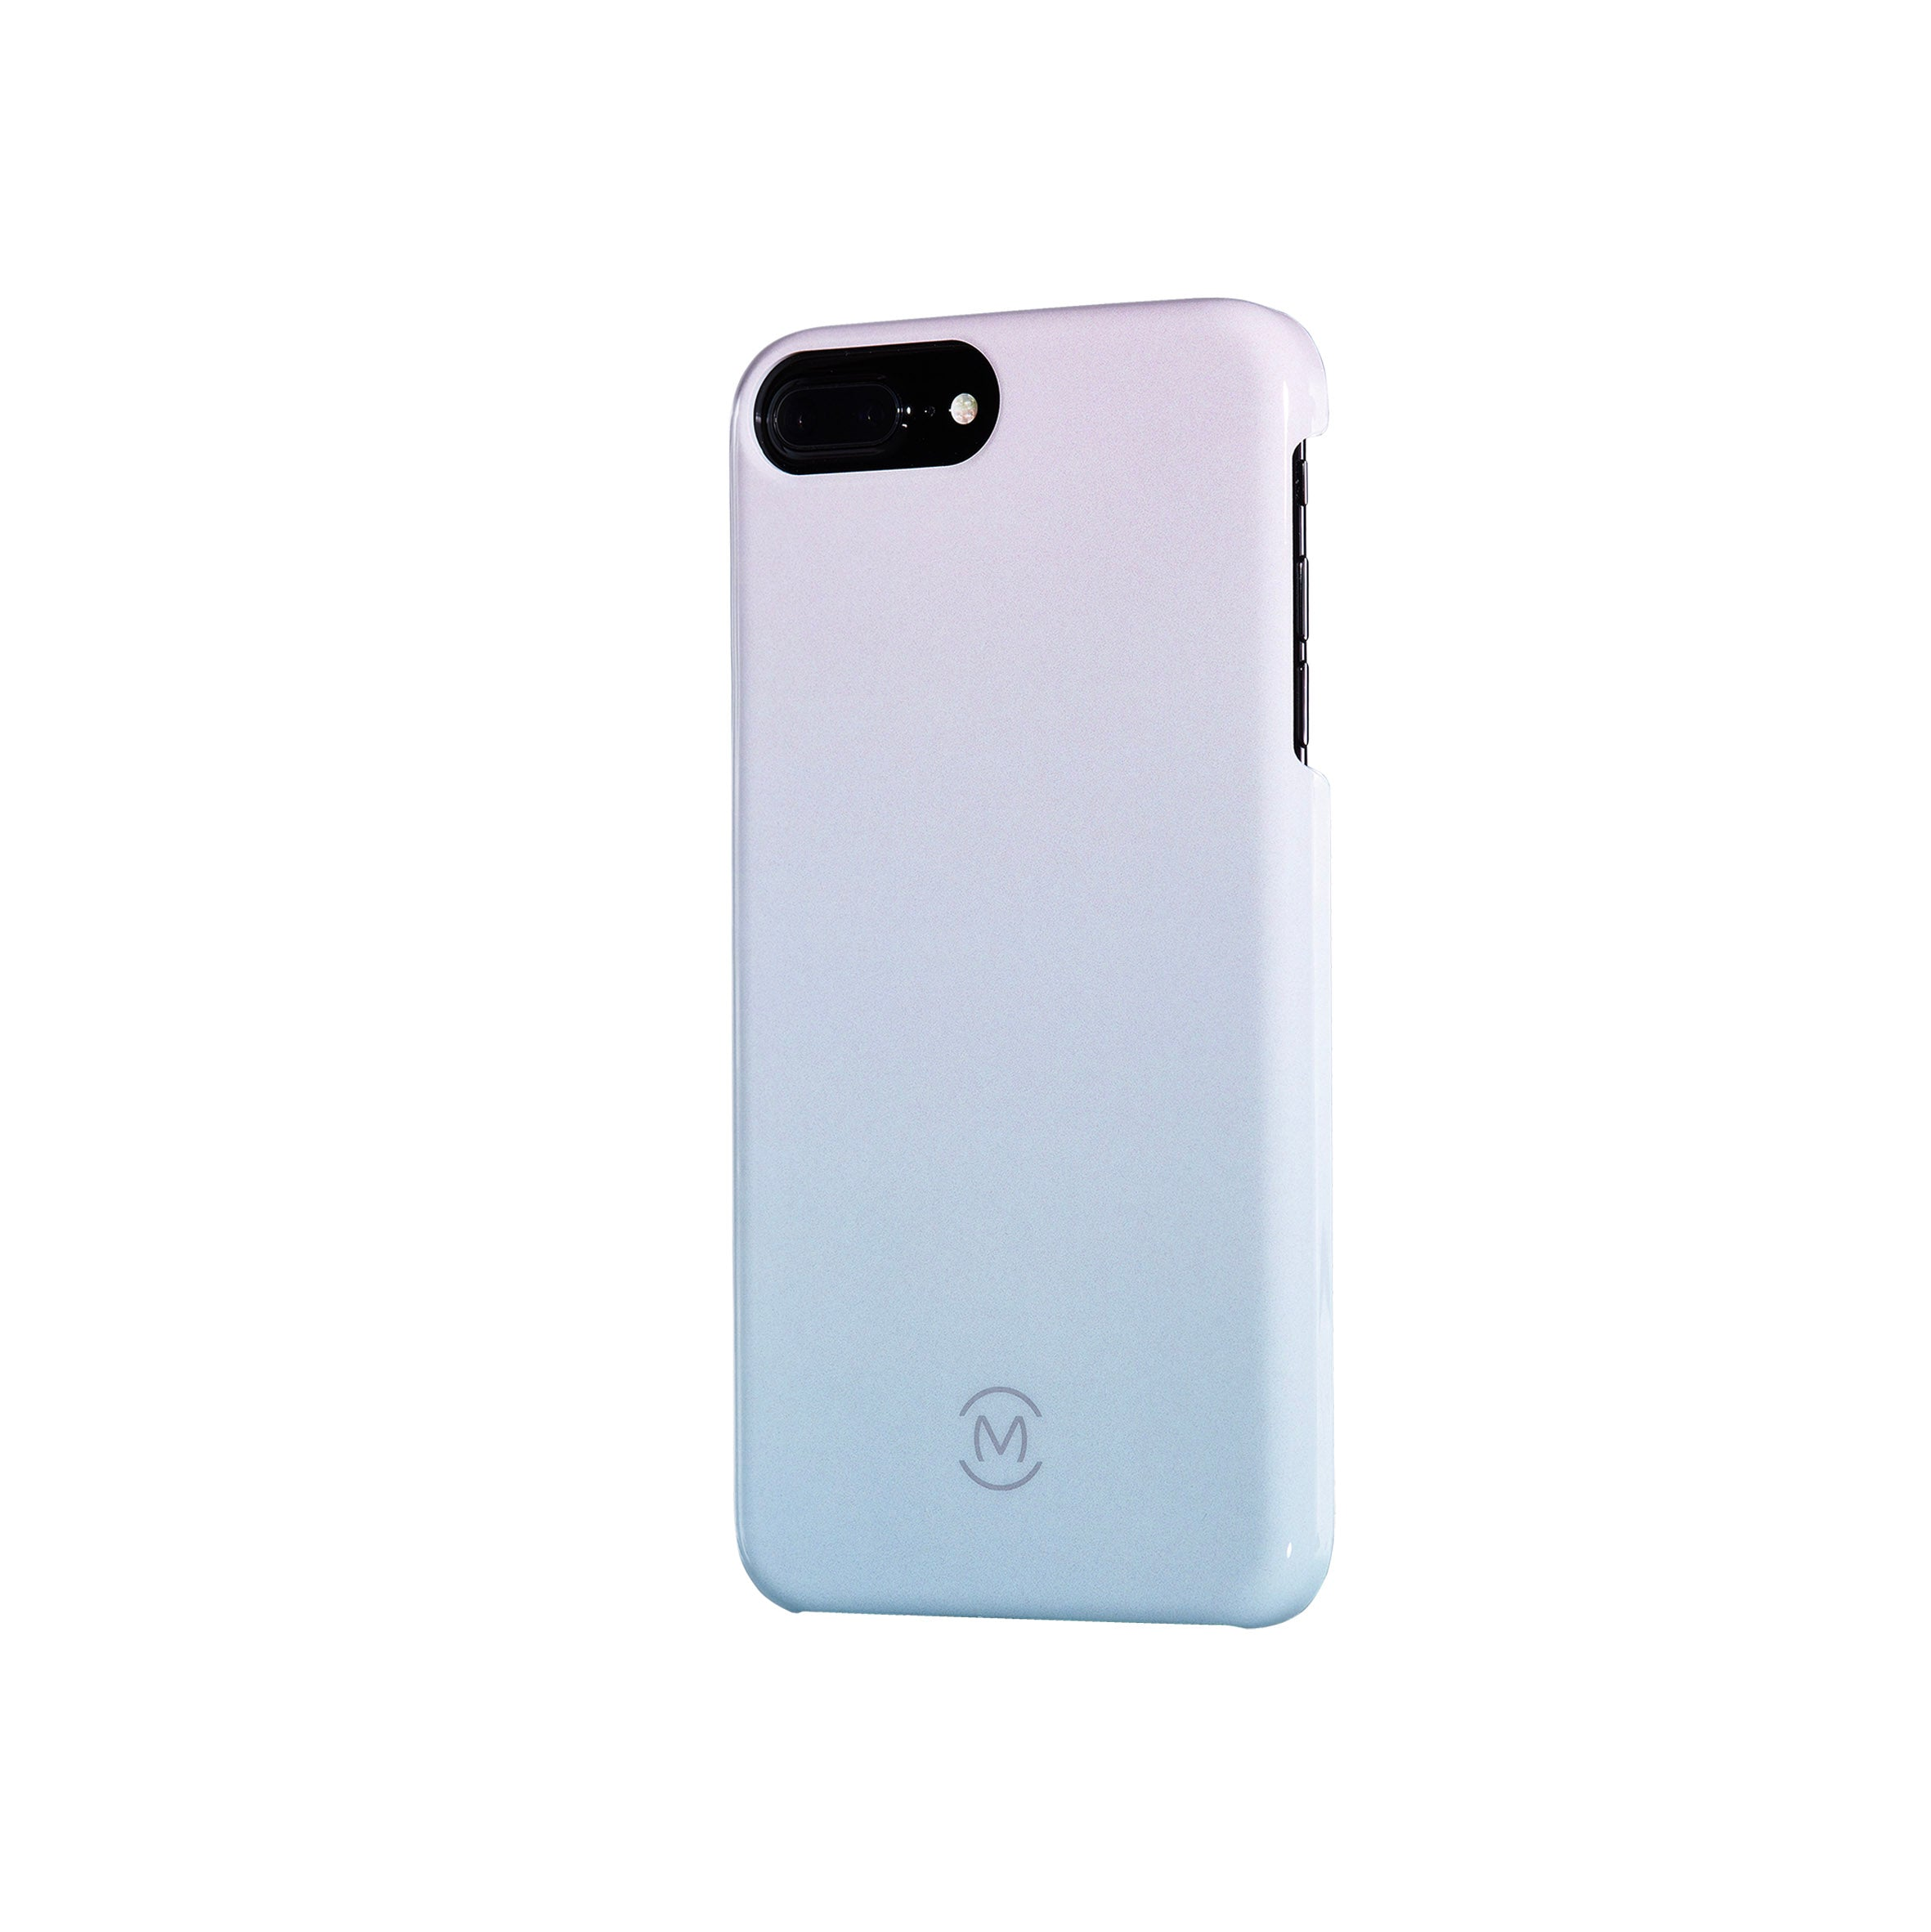 Icy Blue Gradient Sea Ice Recyclable Phone Case by Movement for iPhone 8 Plus, iPhone 7 Plus, iPhone 6s Plus, and iPhone 6 Plus (Right)